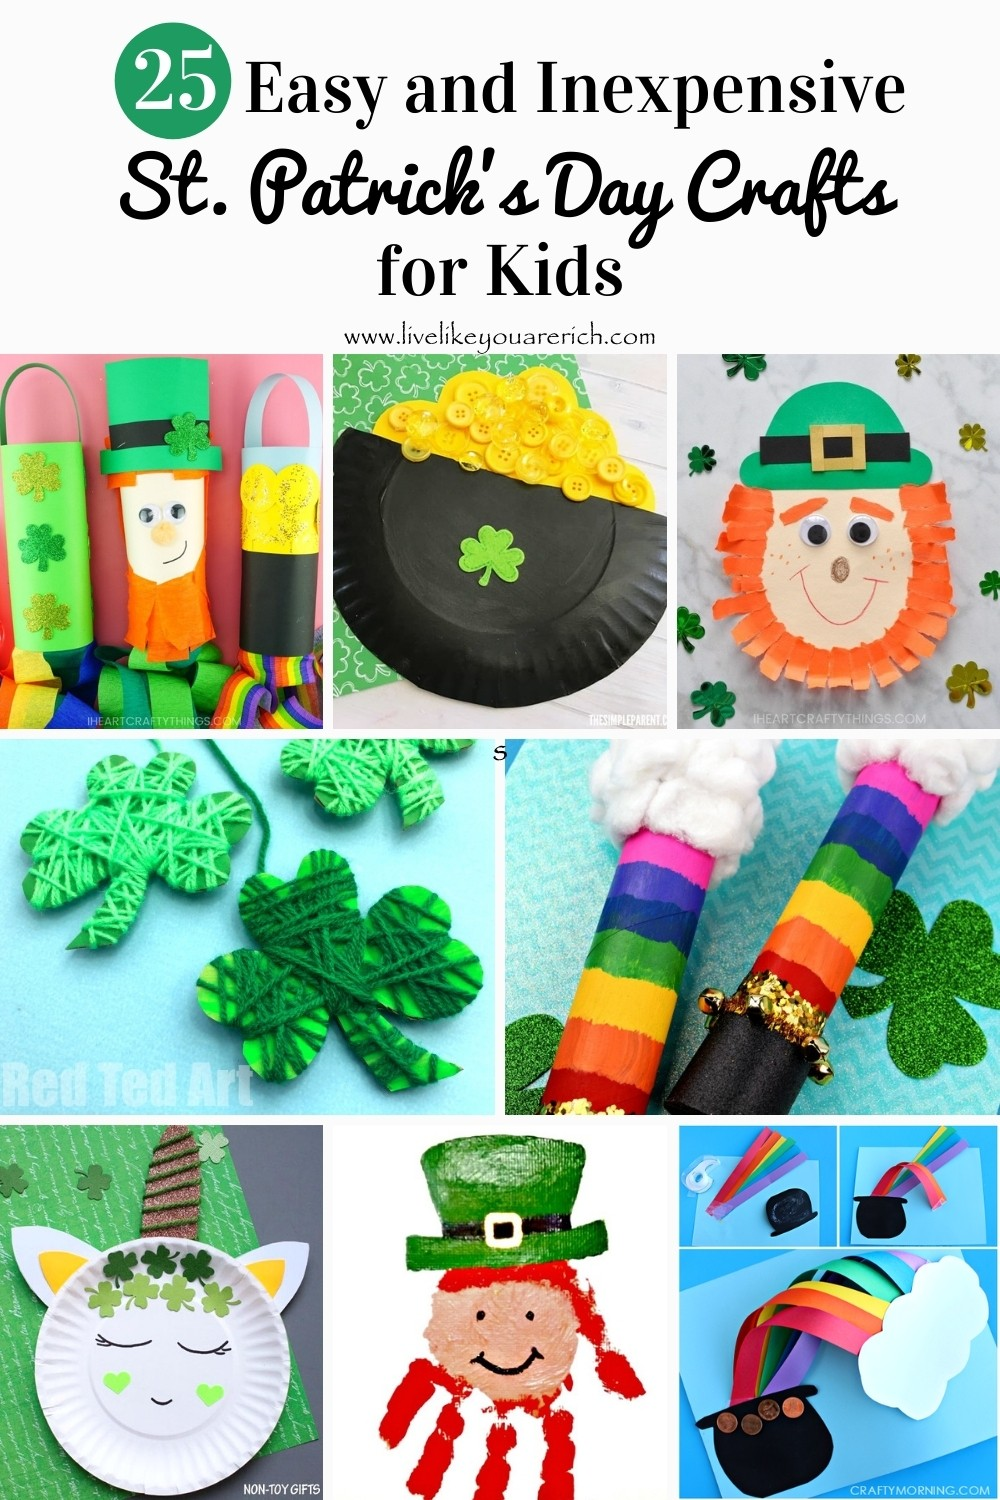 I'm always looking for easy and fun crafts I can do with my kids. Today, I've rounded up some of my favorite easy and fun St. Patrick's Day crafts for kids.